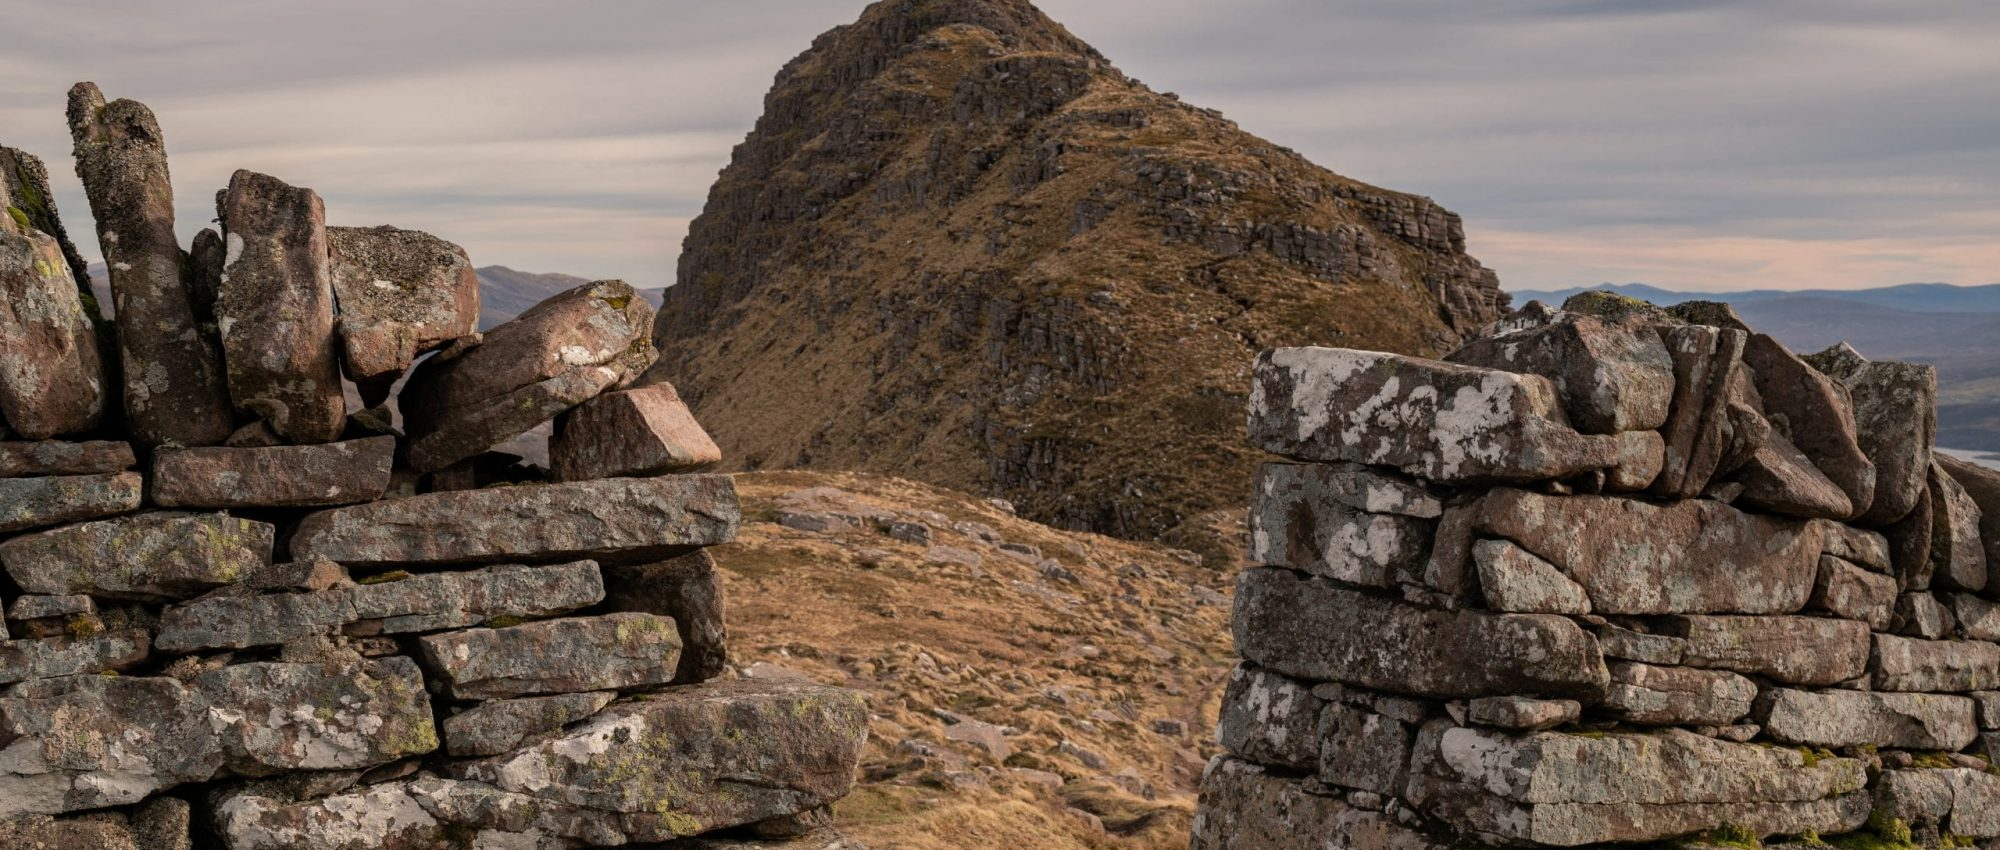 Suilven NC500 accommodation hillwalking Feb 19 (151 of 215)